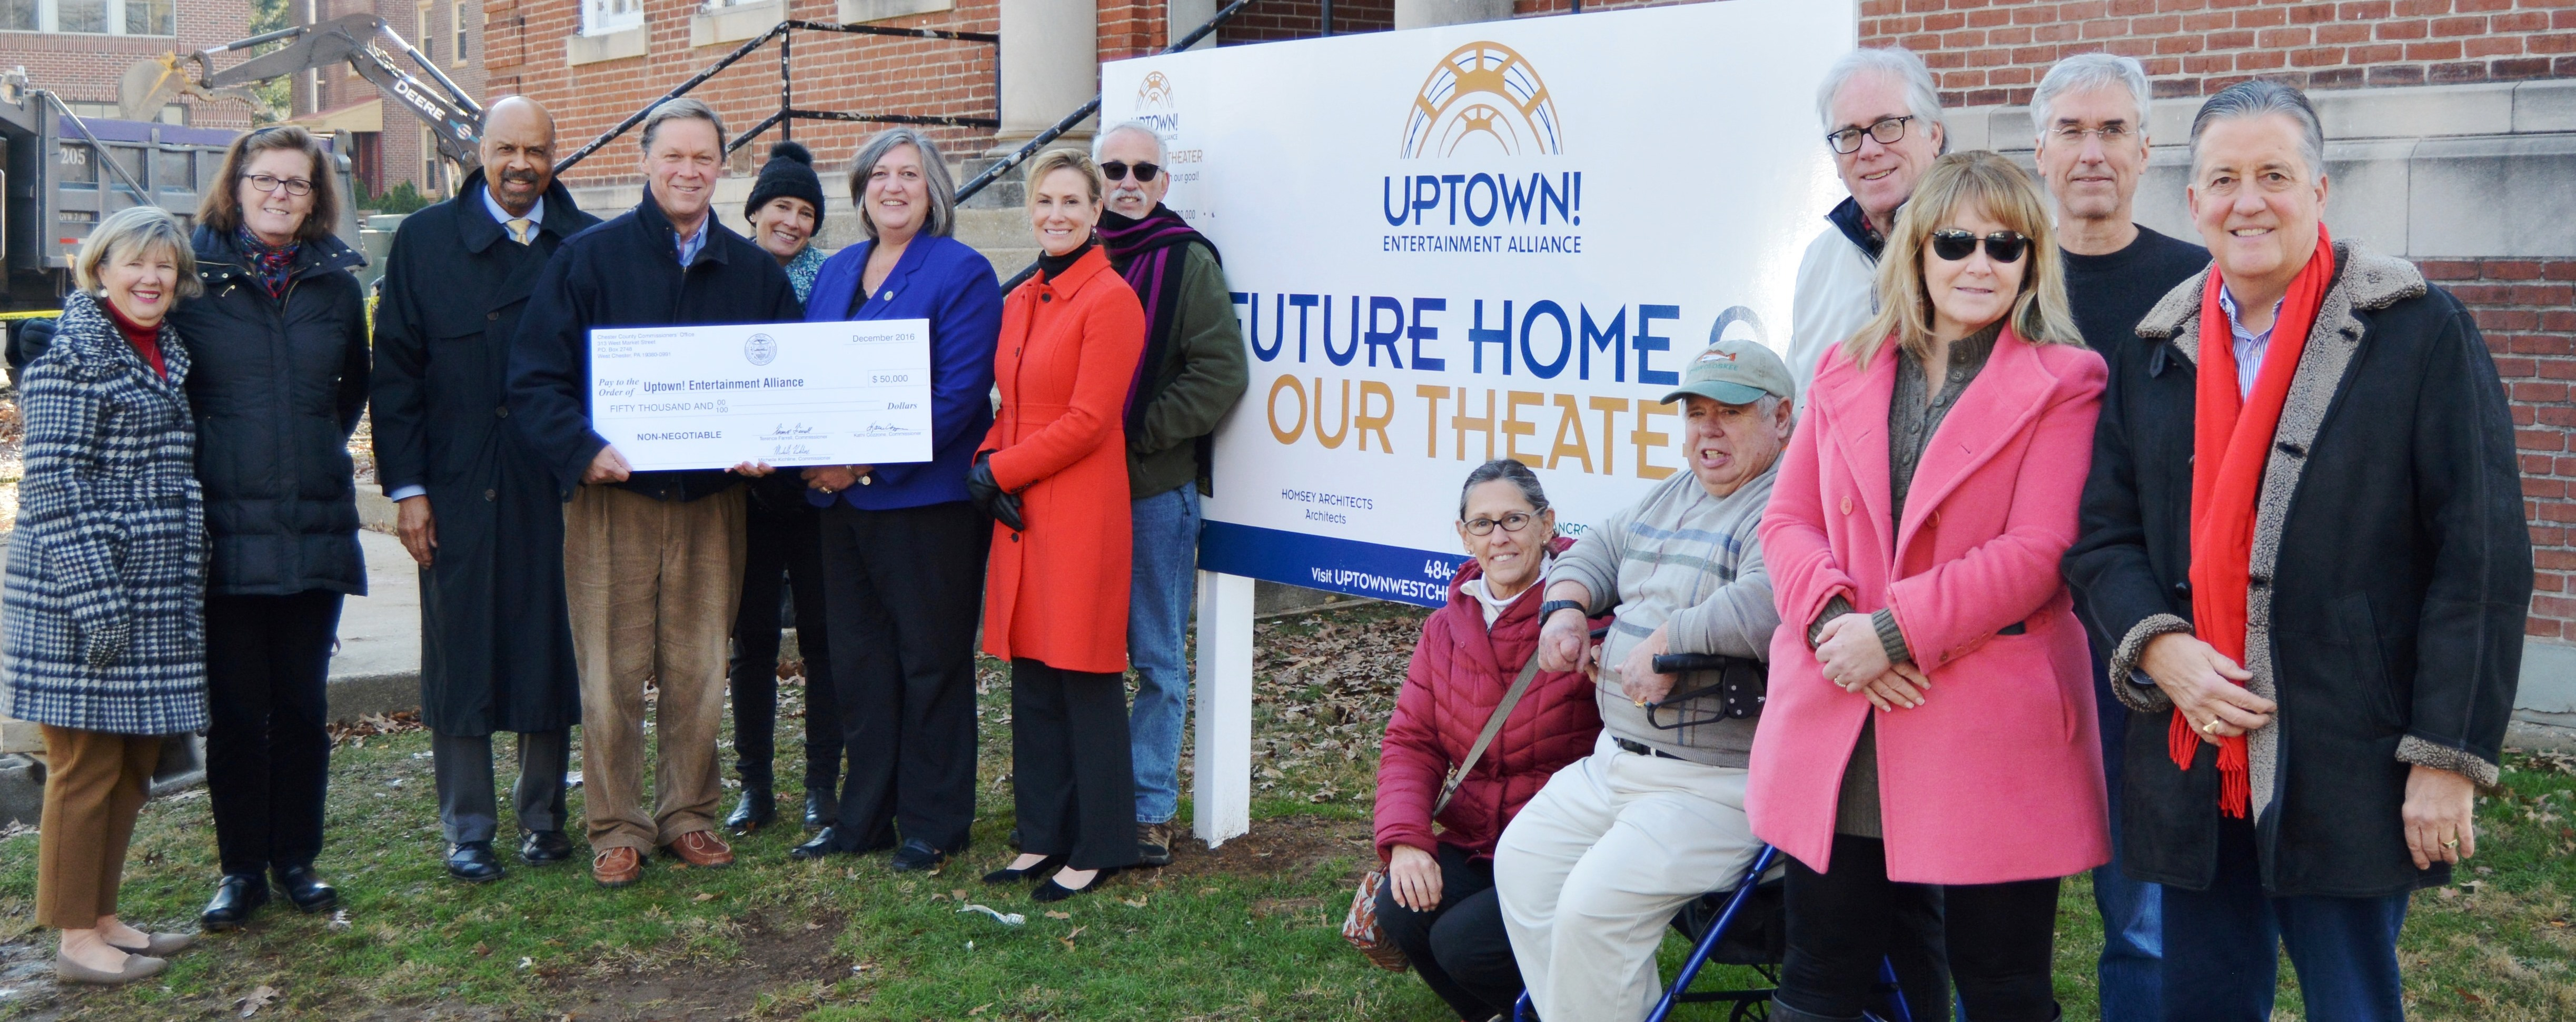 Chester County Commissioners Present $50,000 Check to Uptown! Entertainment Alliance